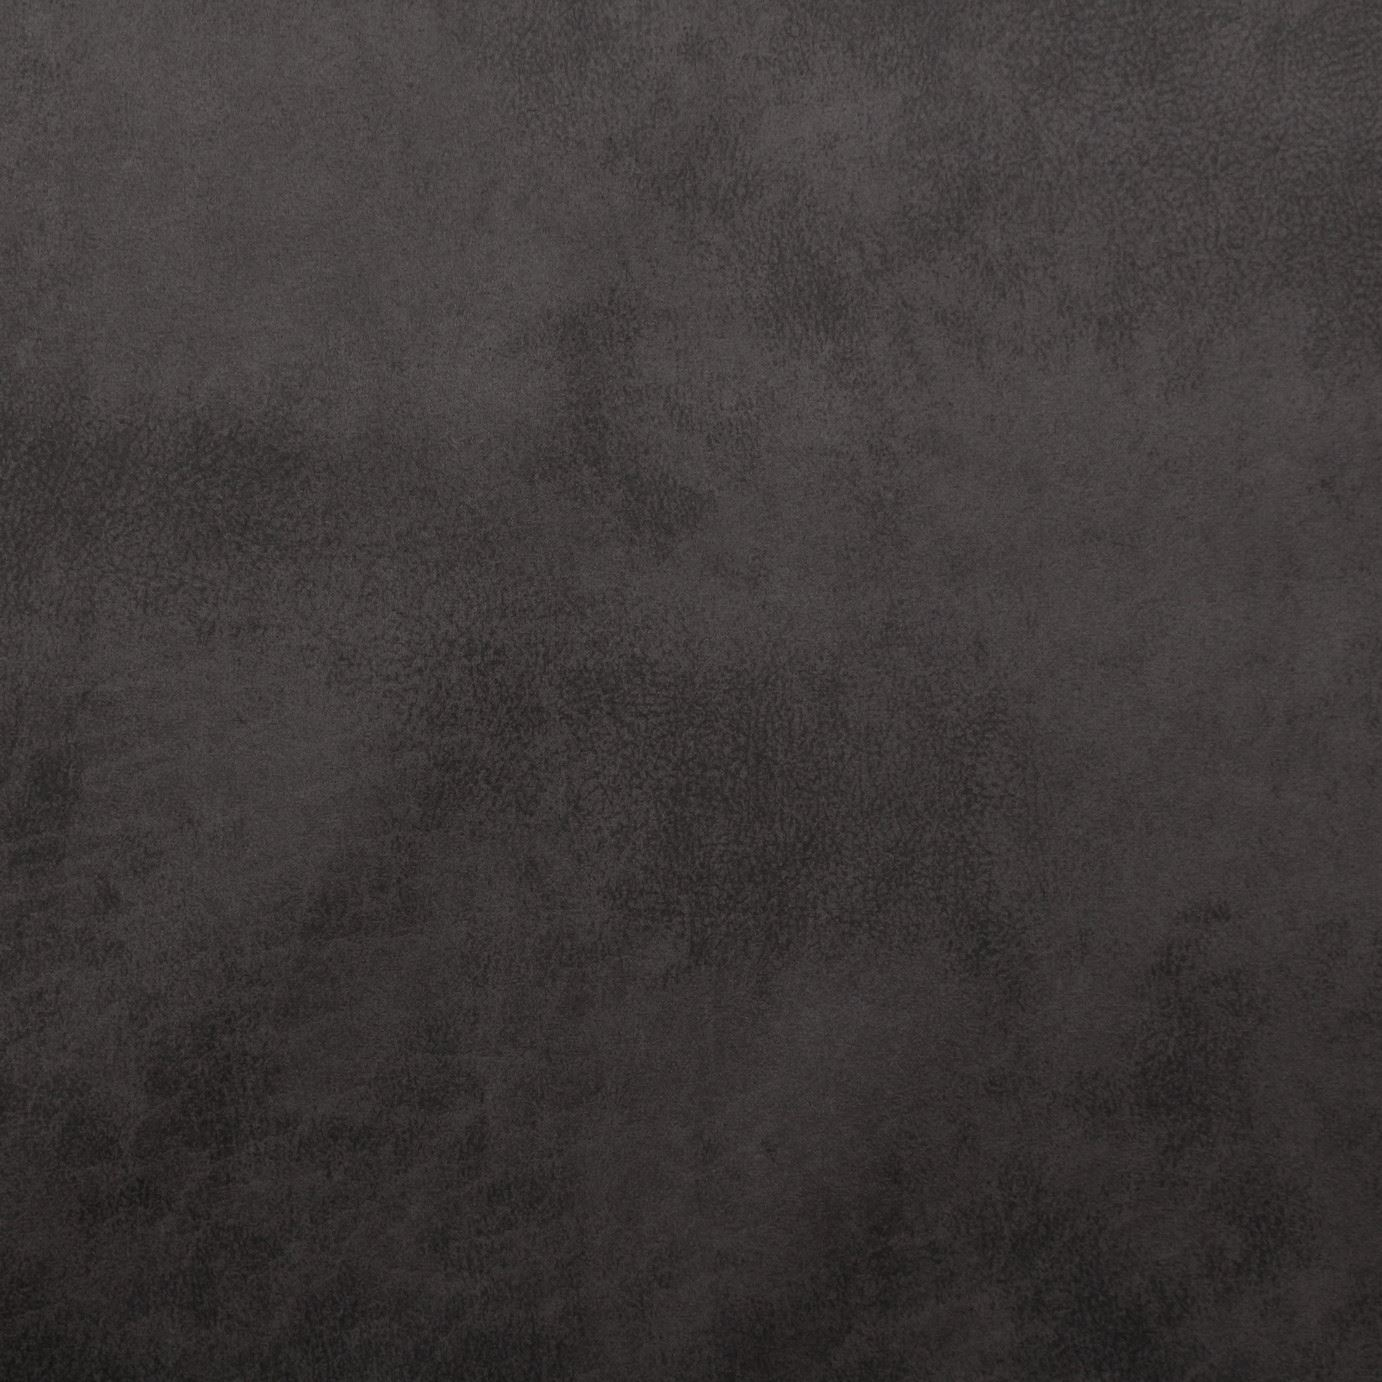 thumbnail 18 - AGED BROWN DISTRESSED ANTIQUED SUEDE FAUX LEATHER LEATHERETTE UPHOLSTERY FABRIC